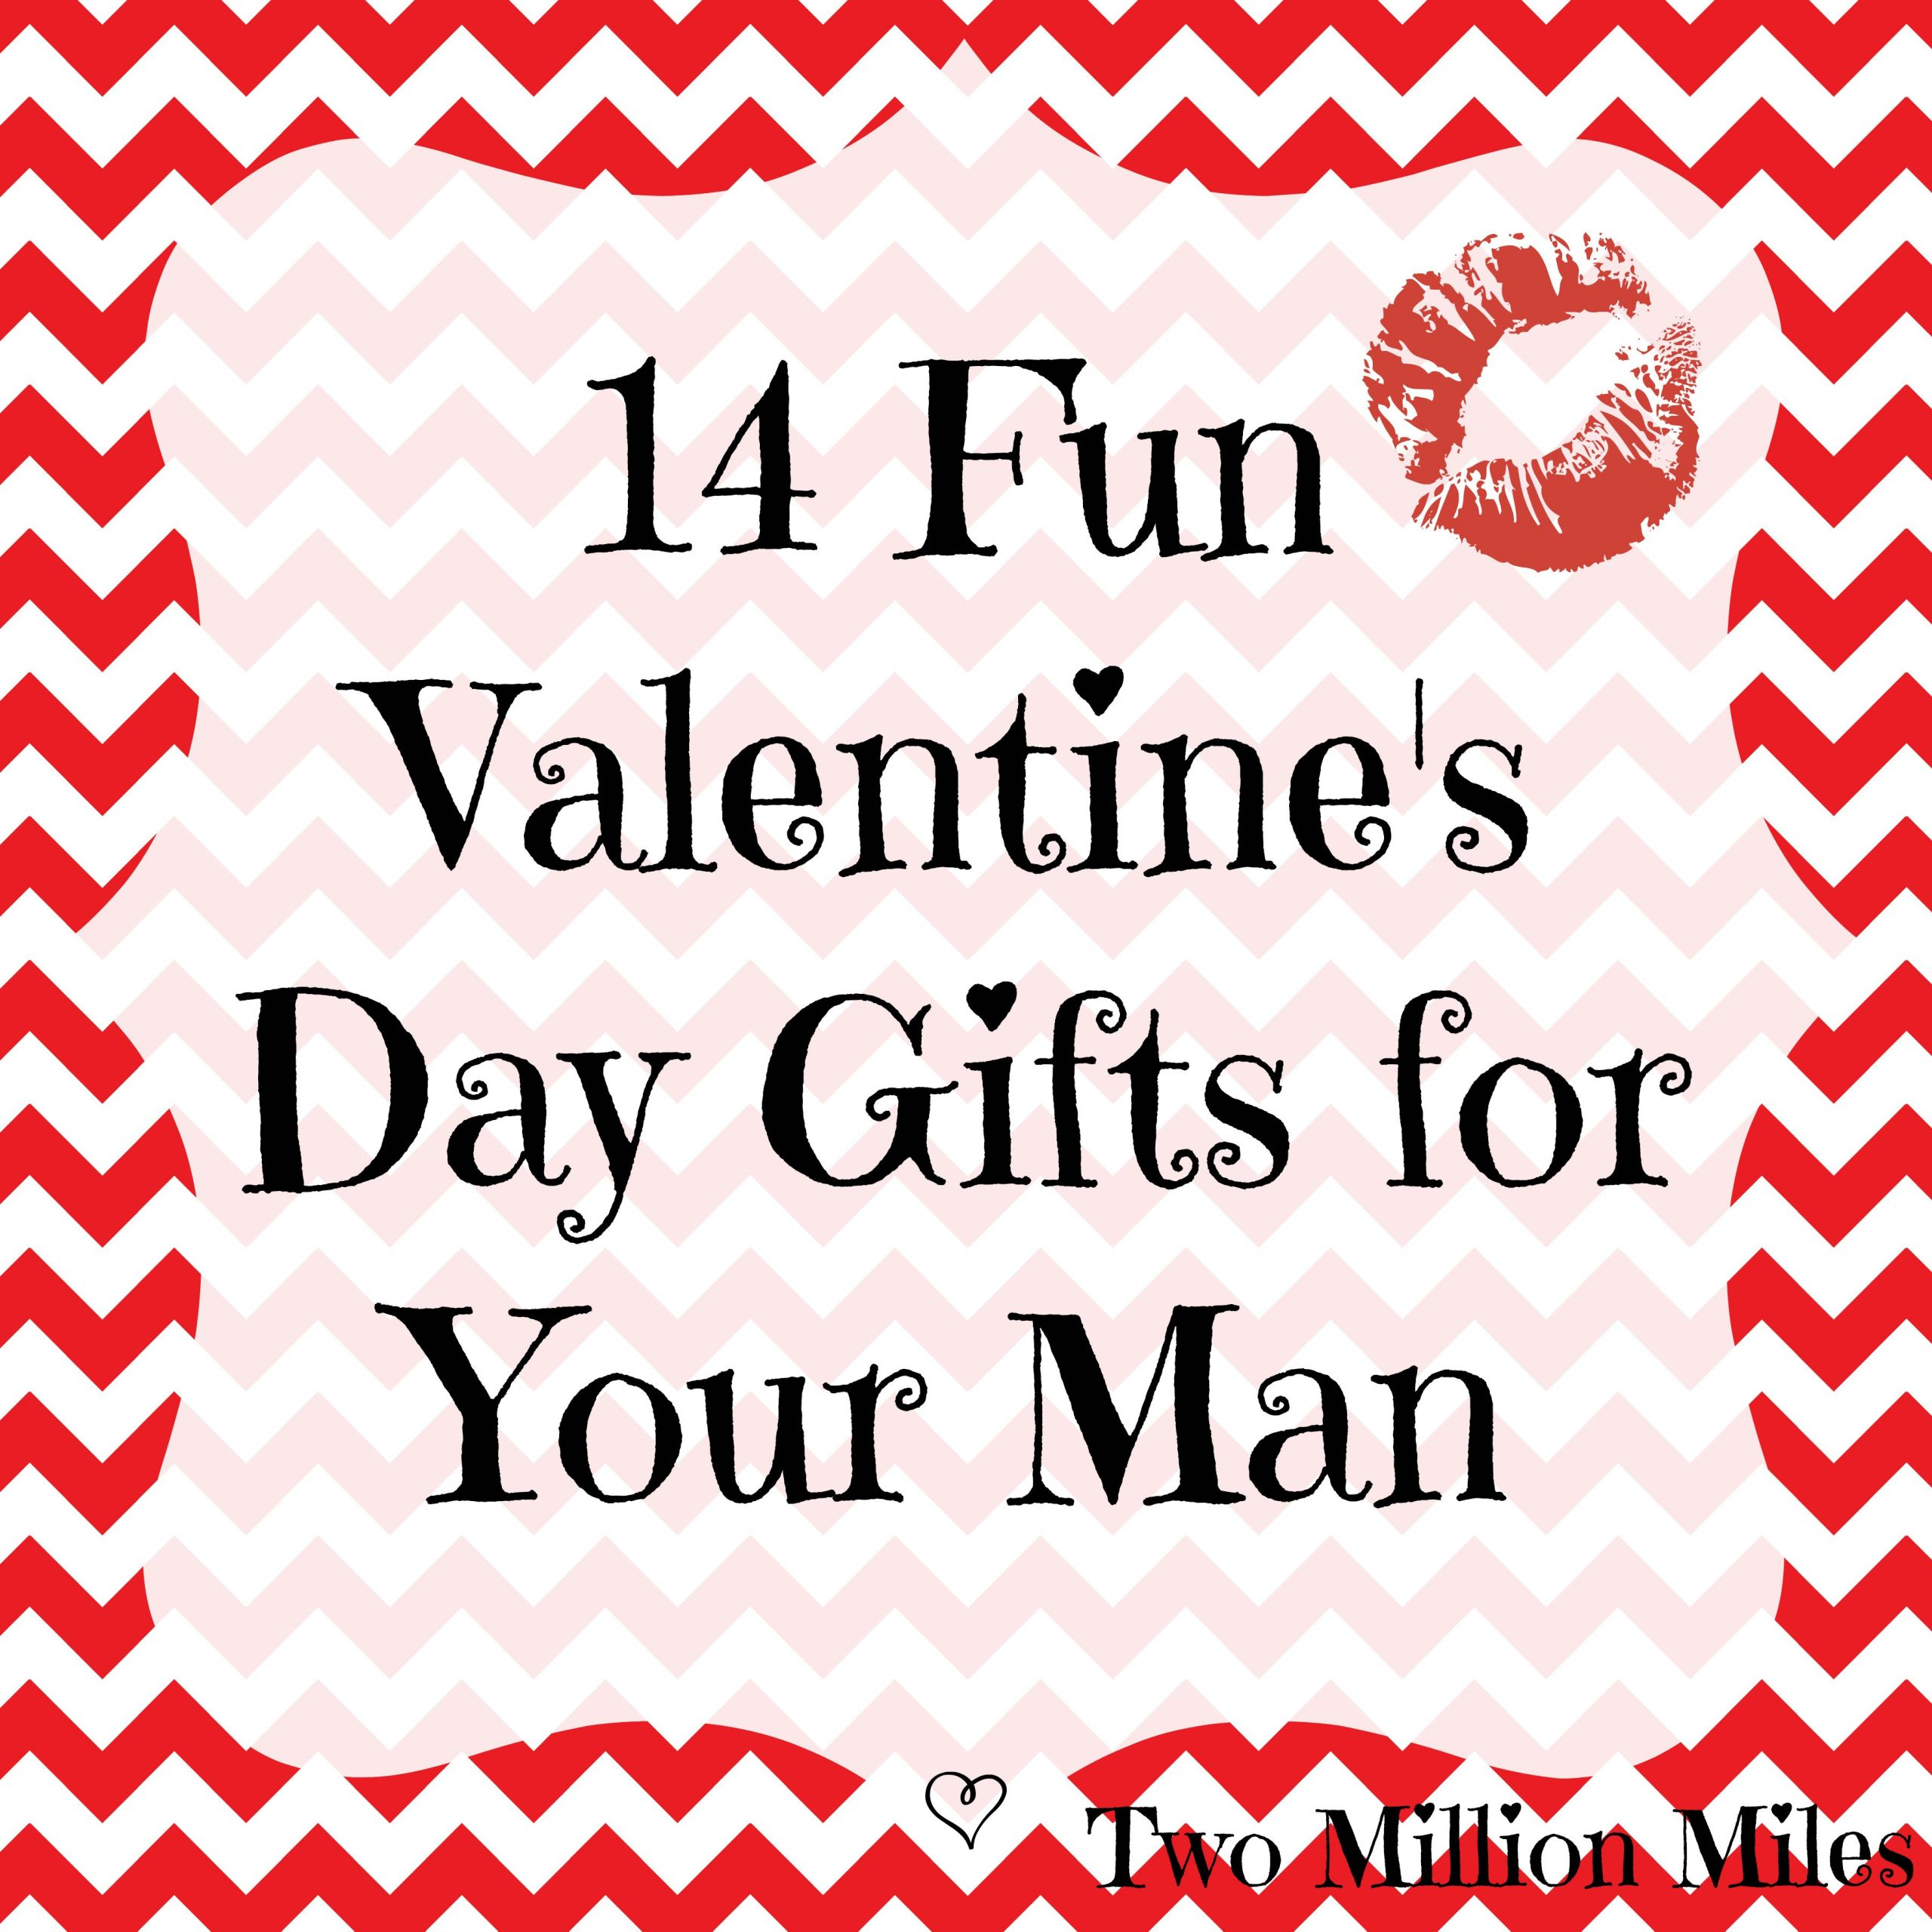 Valentine Gift Ideas For Men  14 Valentine's Day Gifts for Your Man